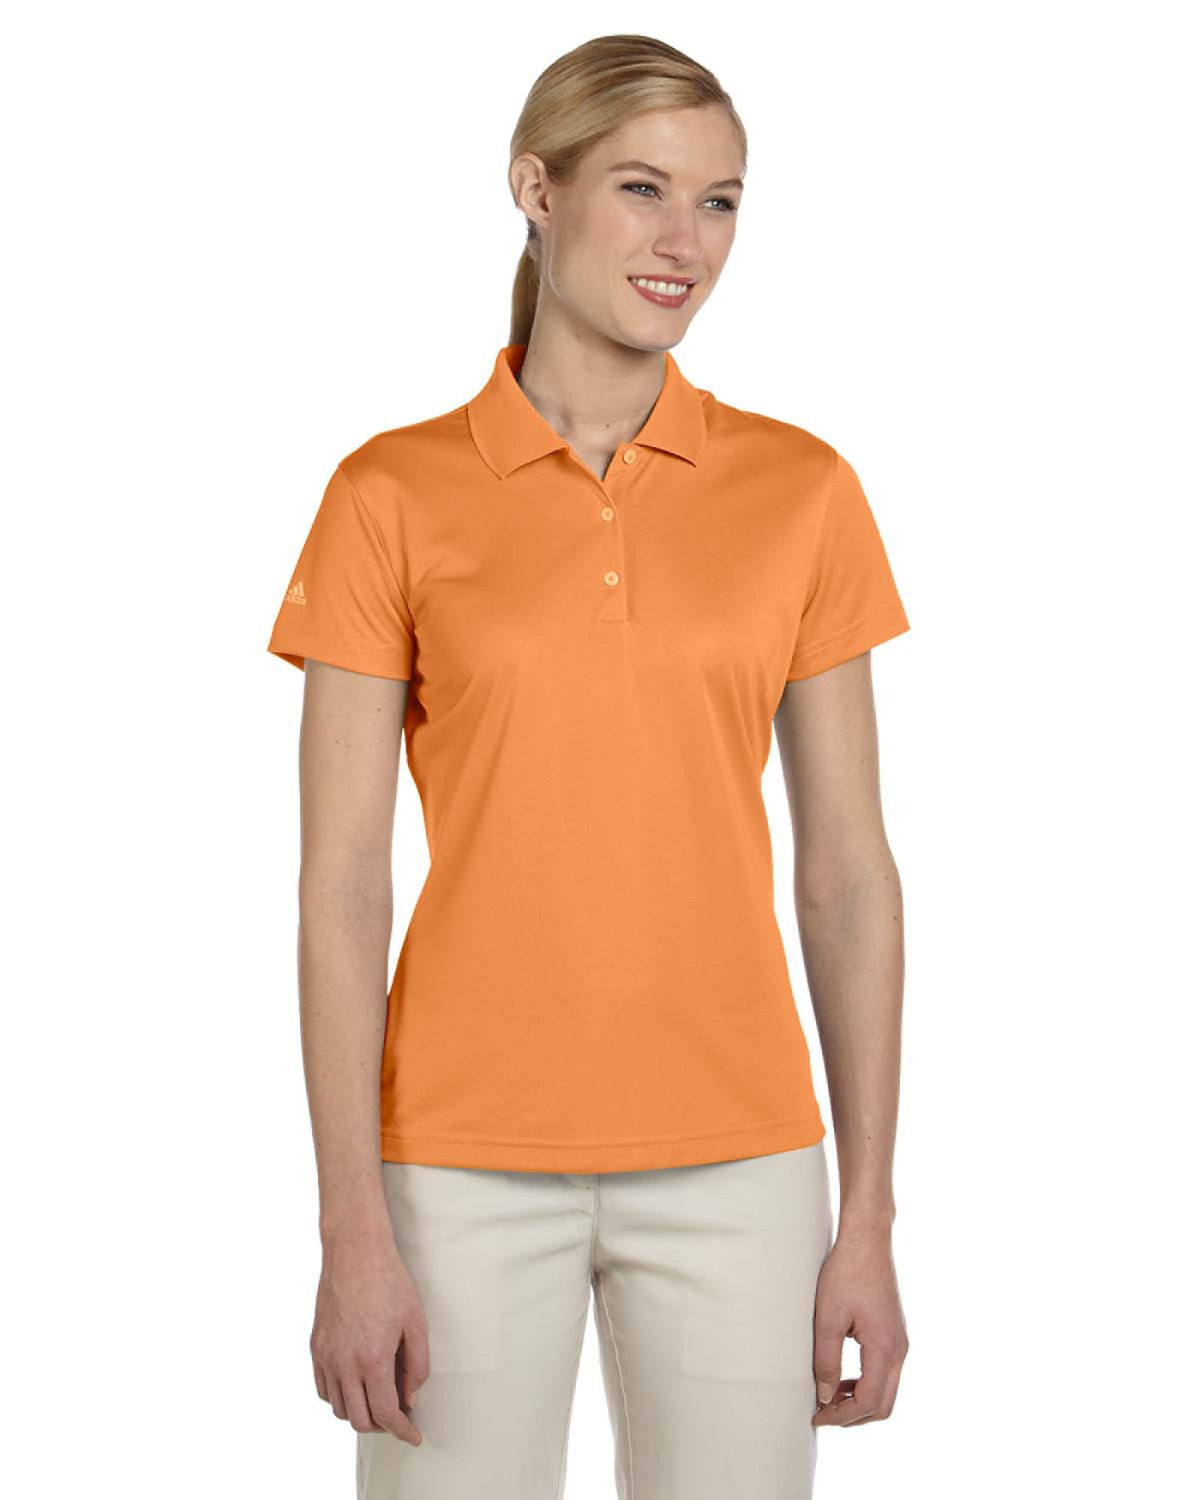 Adidas Golf Women s ClimaLite Basic Polo. A131. 9800be4c29